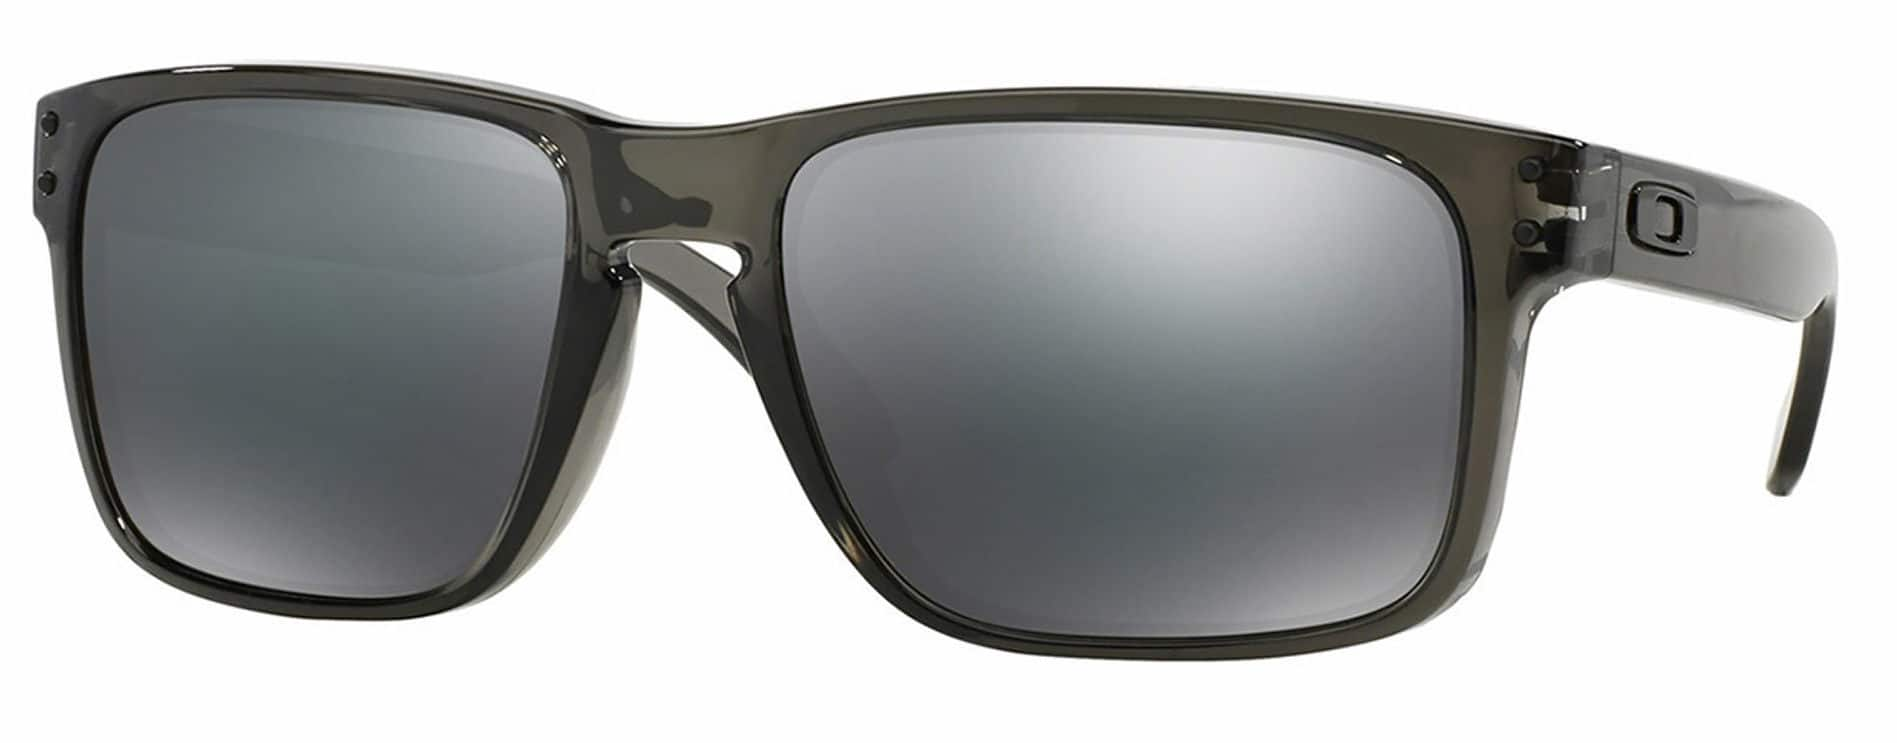 Oakley Holbrook Sunglasses for Men $59 + free shipping @ BJs $59.99